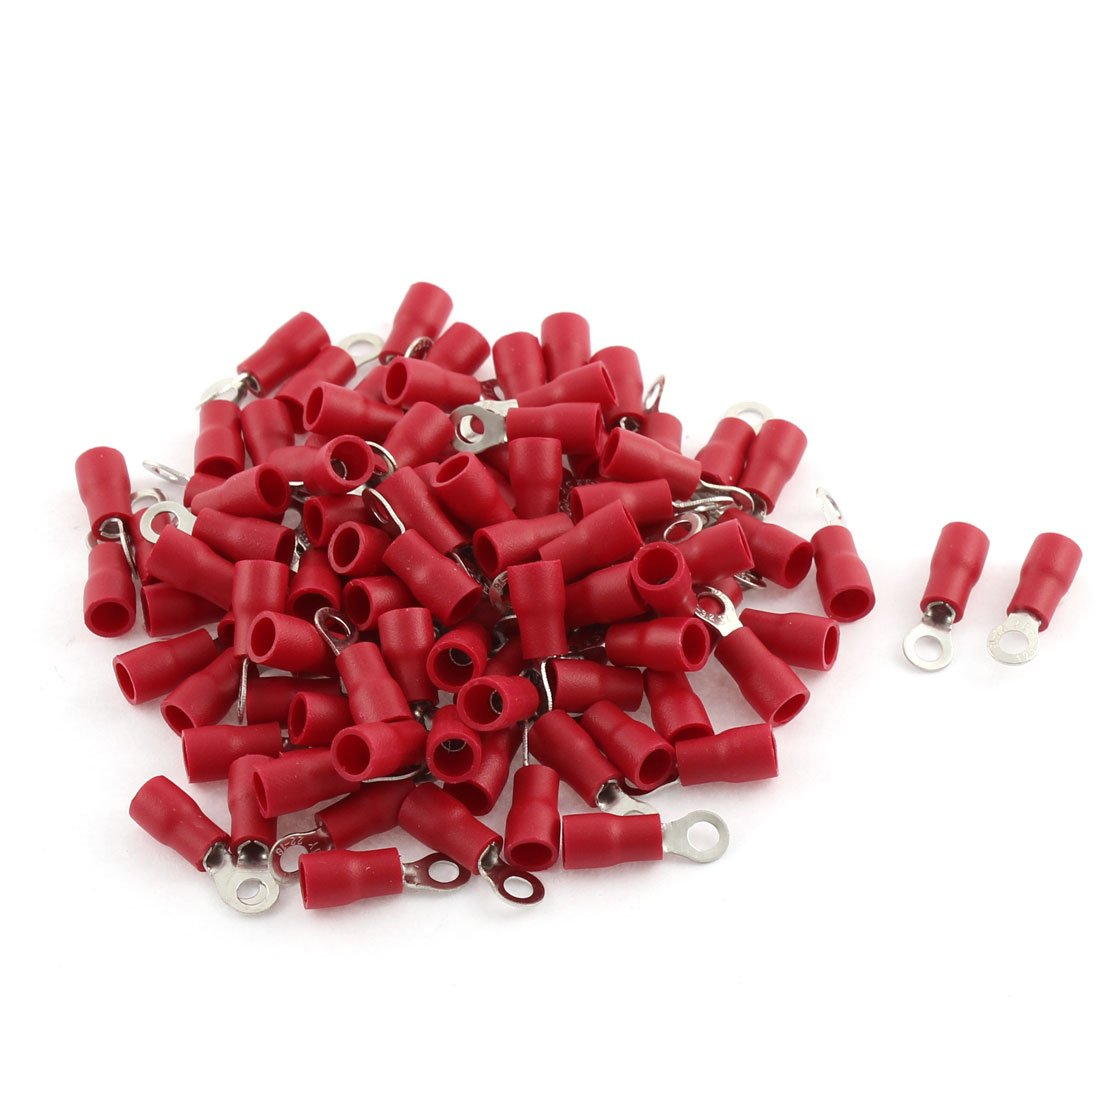 sourcingmap 100pcs Ring Tongue Pre Insulated Terminals Red for AWG 22-16 Cable a15060200ux0293